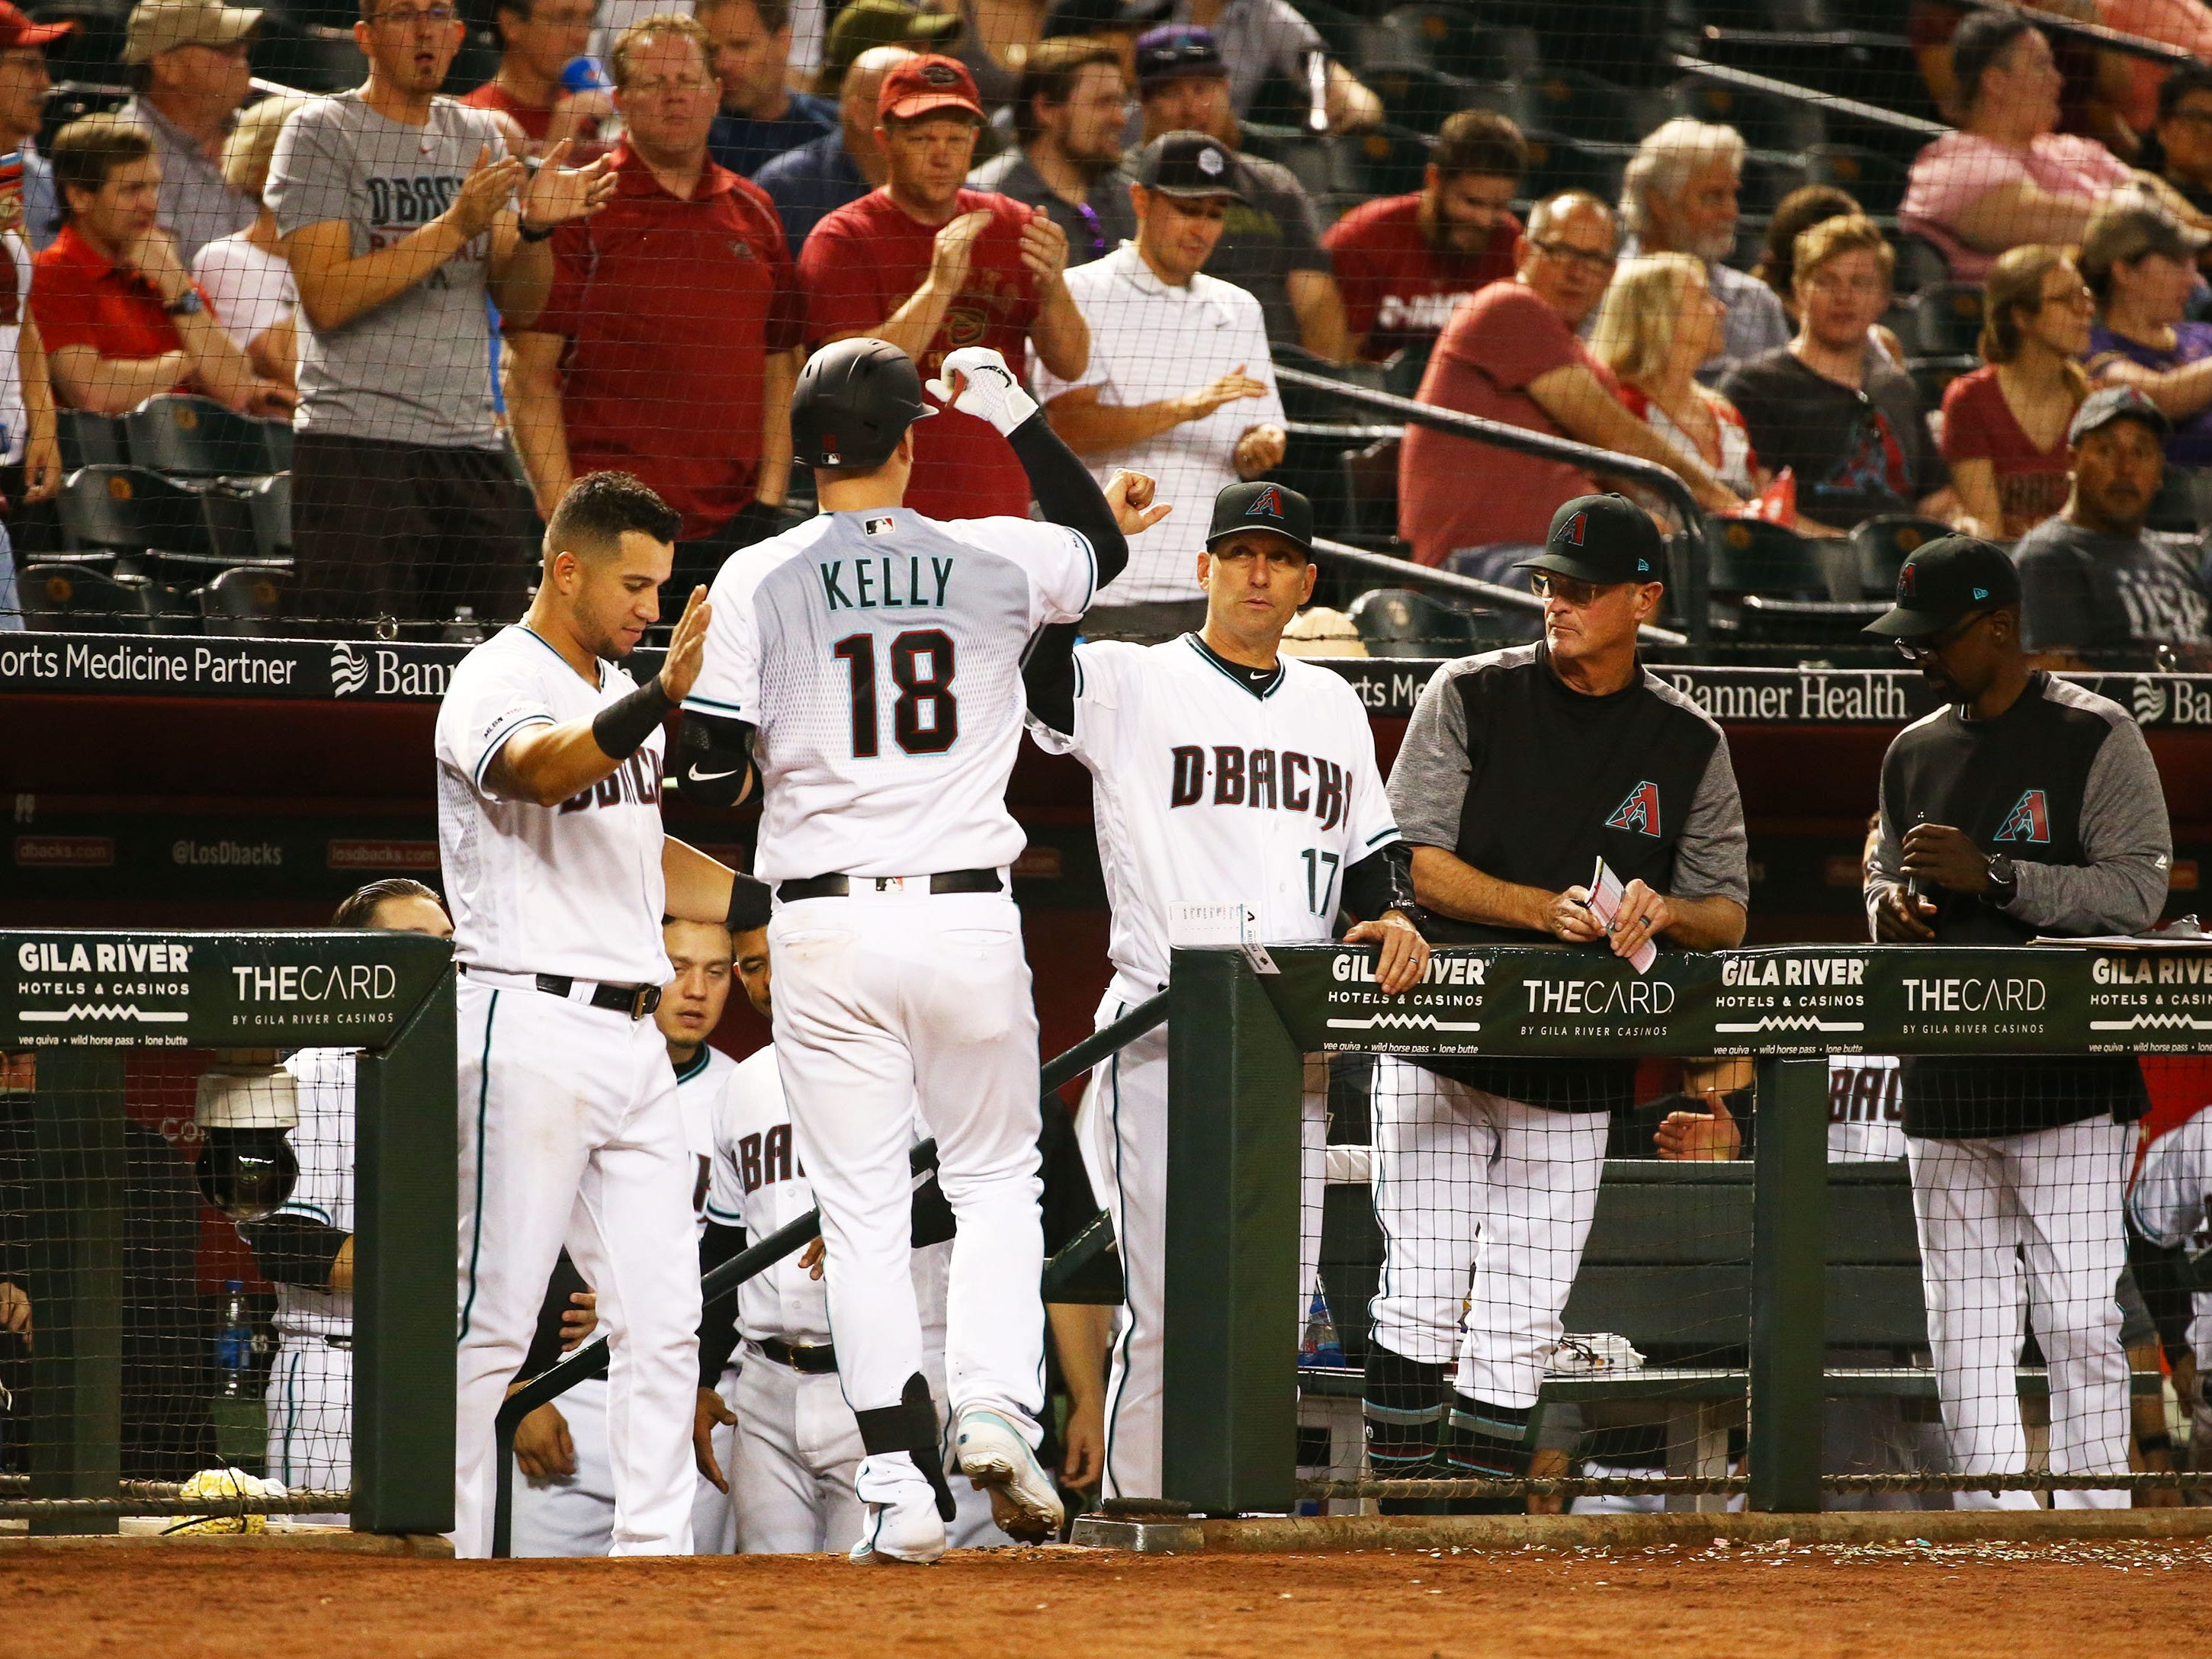 Arizona Diamondbacks Carson Kelly (18) celebrates after hitting a home run against the Pittsburgh Pirates in the eighth inning on May. 14, 2019 at Chase Field in Phoenix, Ariz.